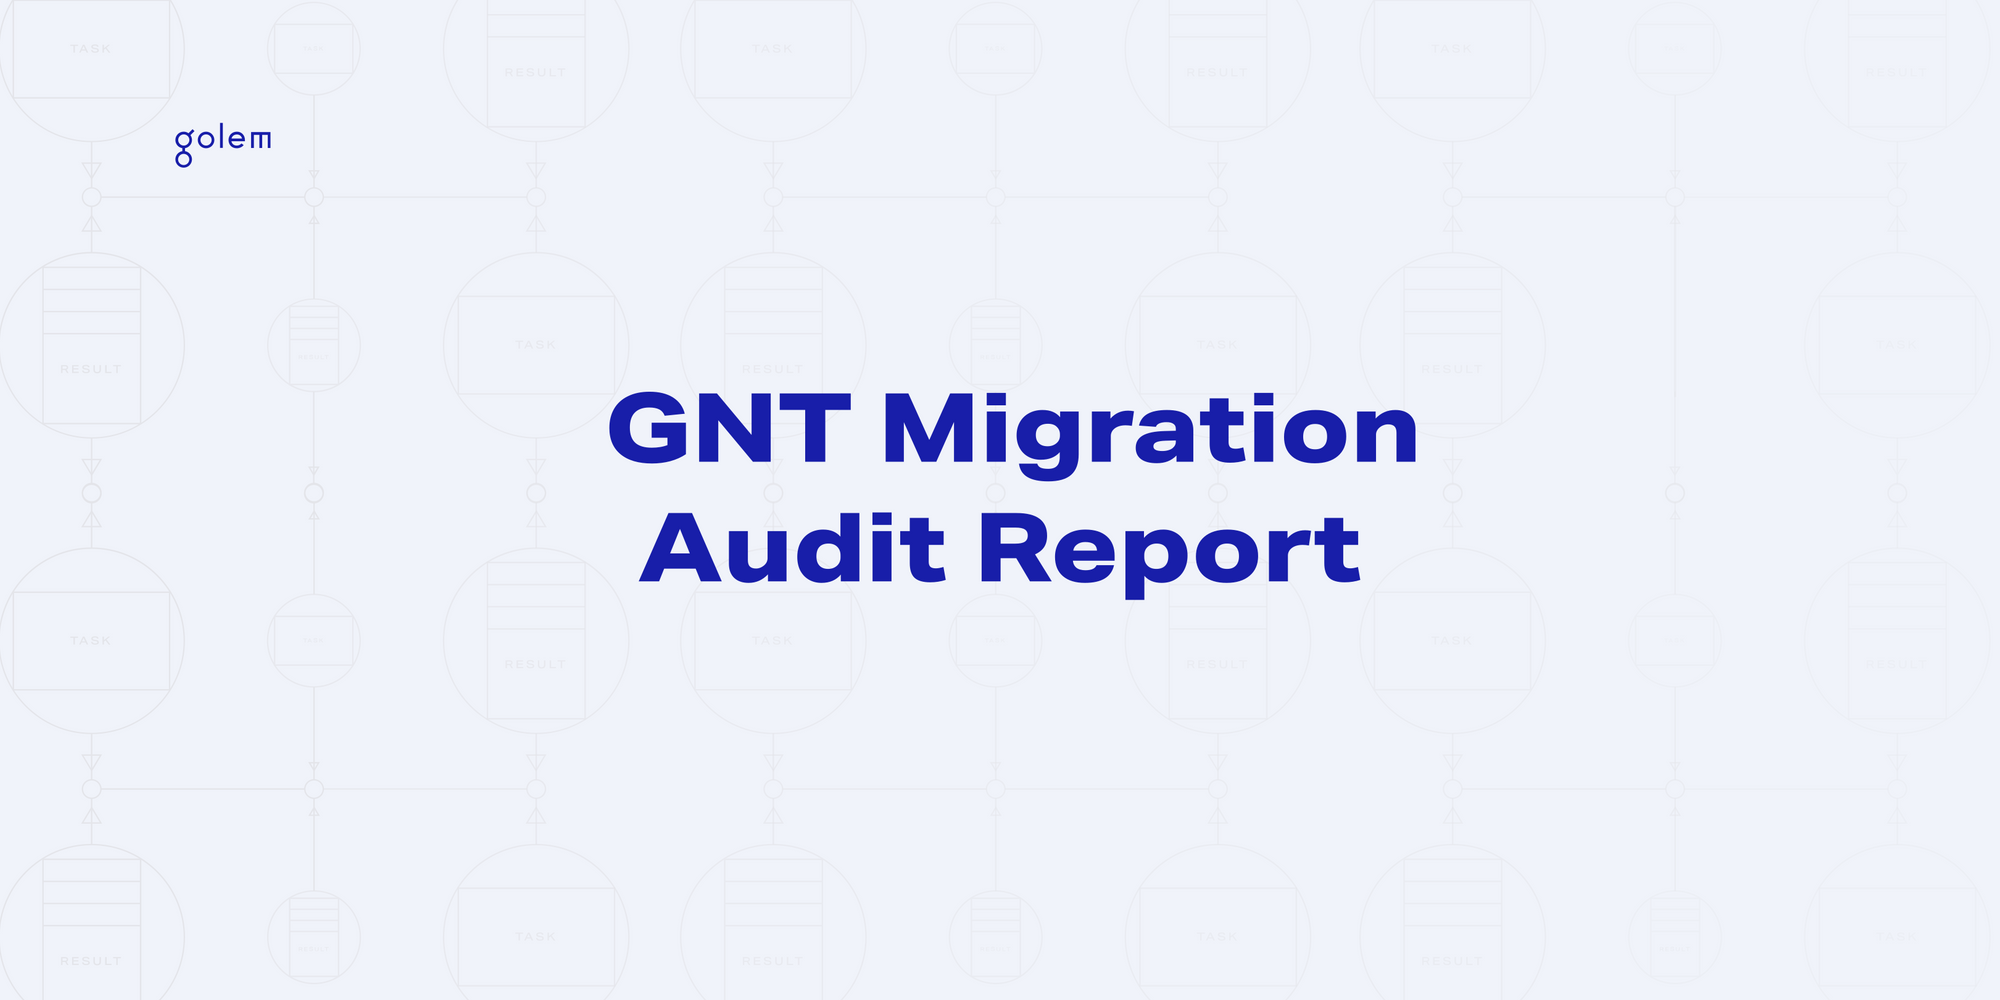 GNT Migration Audit